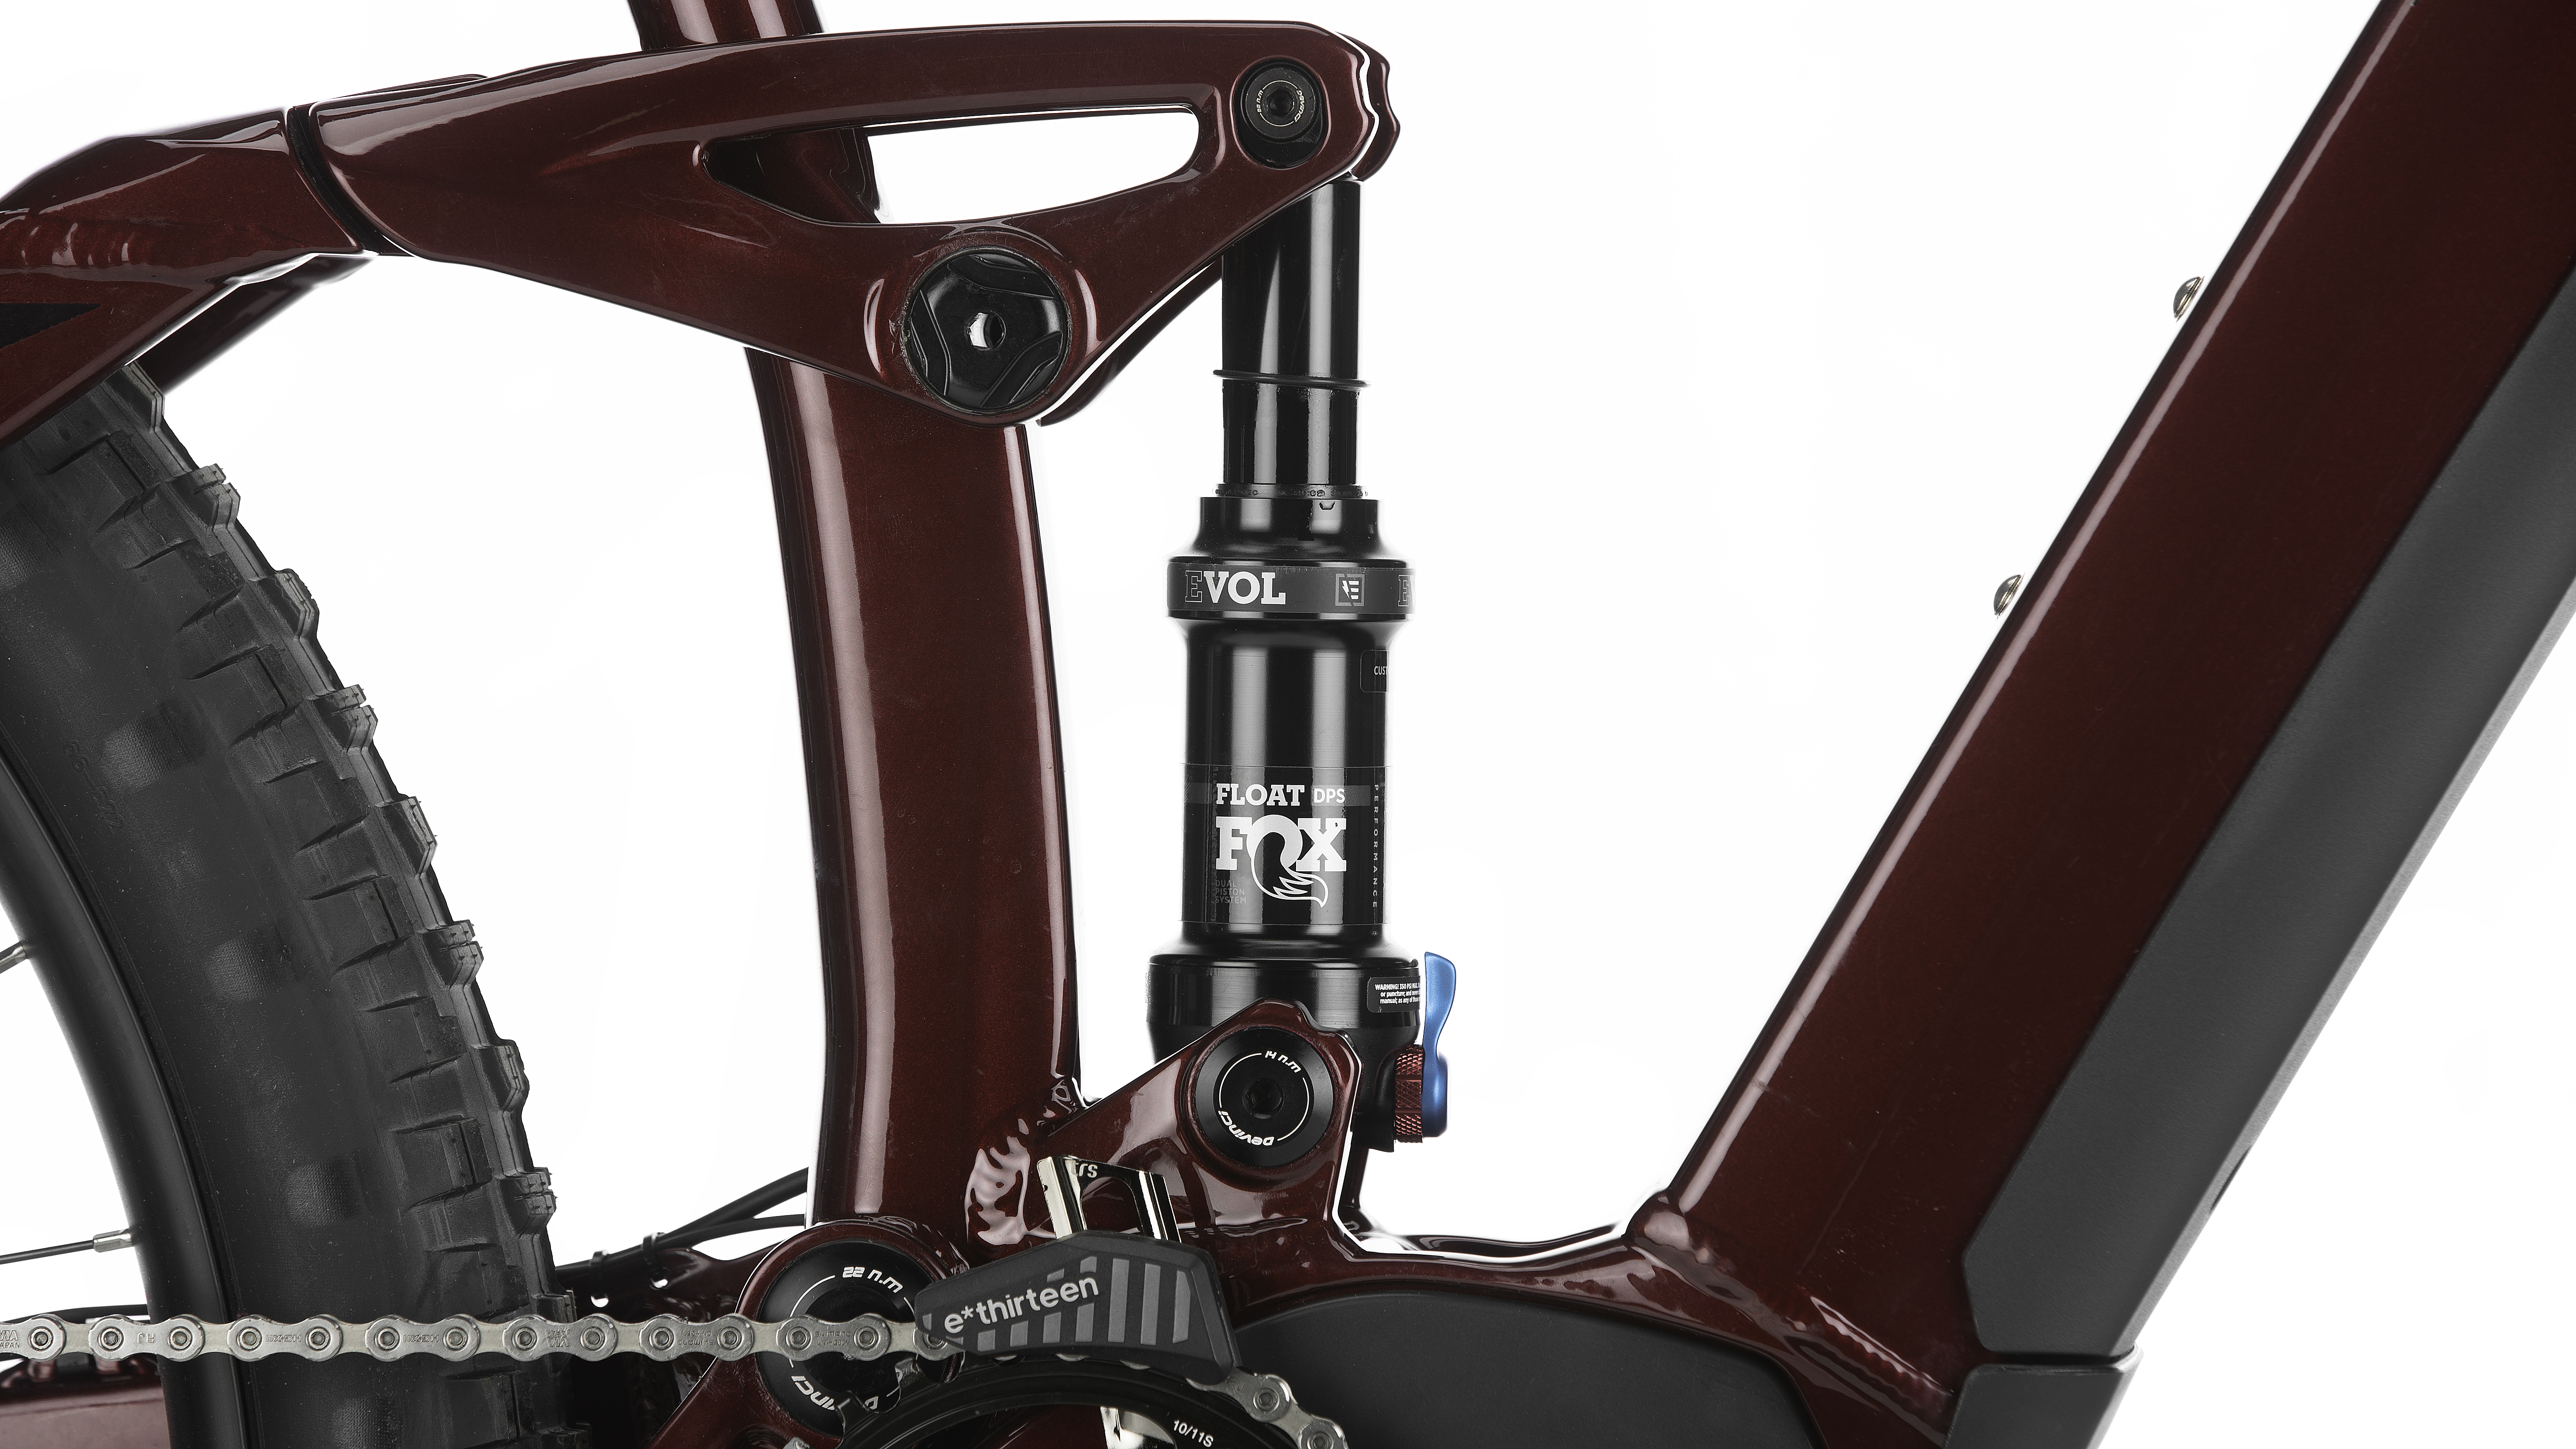 Fox rear suspension with 130mm of travel